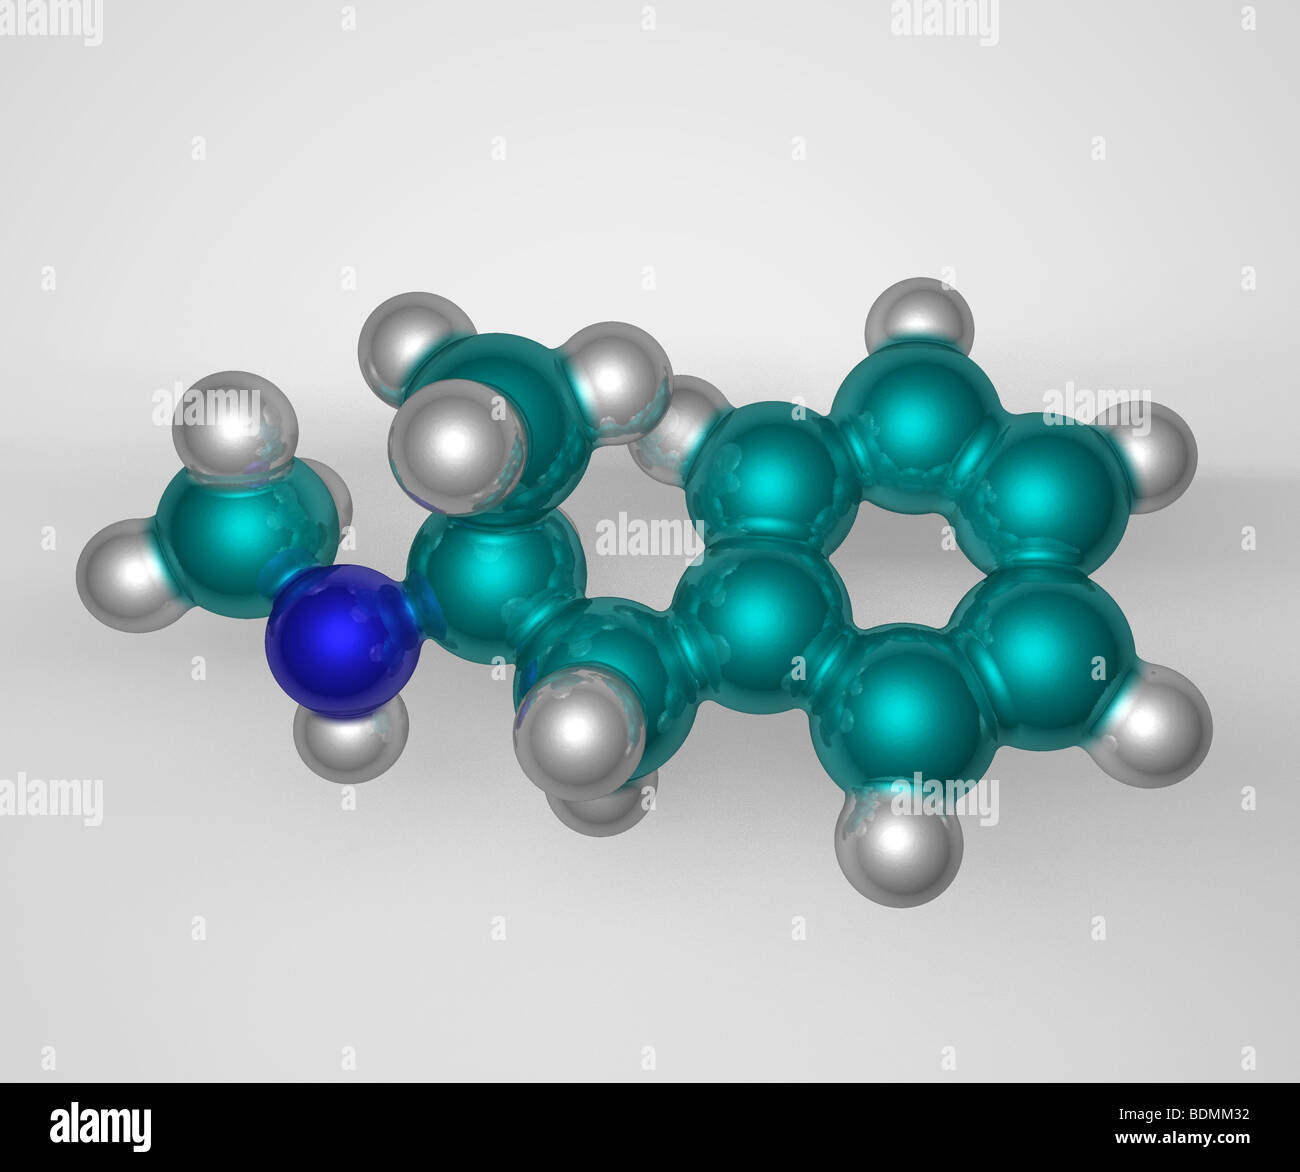 computer-generated, three-dimensional space-filling molecular model of the illegal drug, methamphetamine - Stock Image